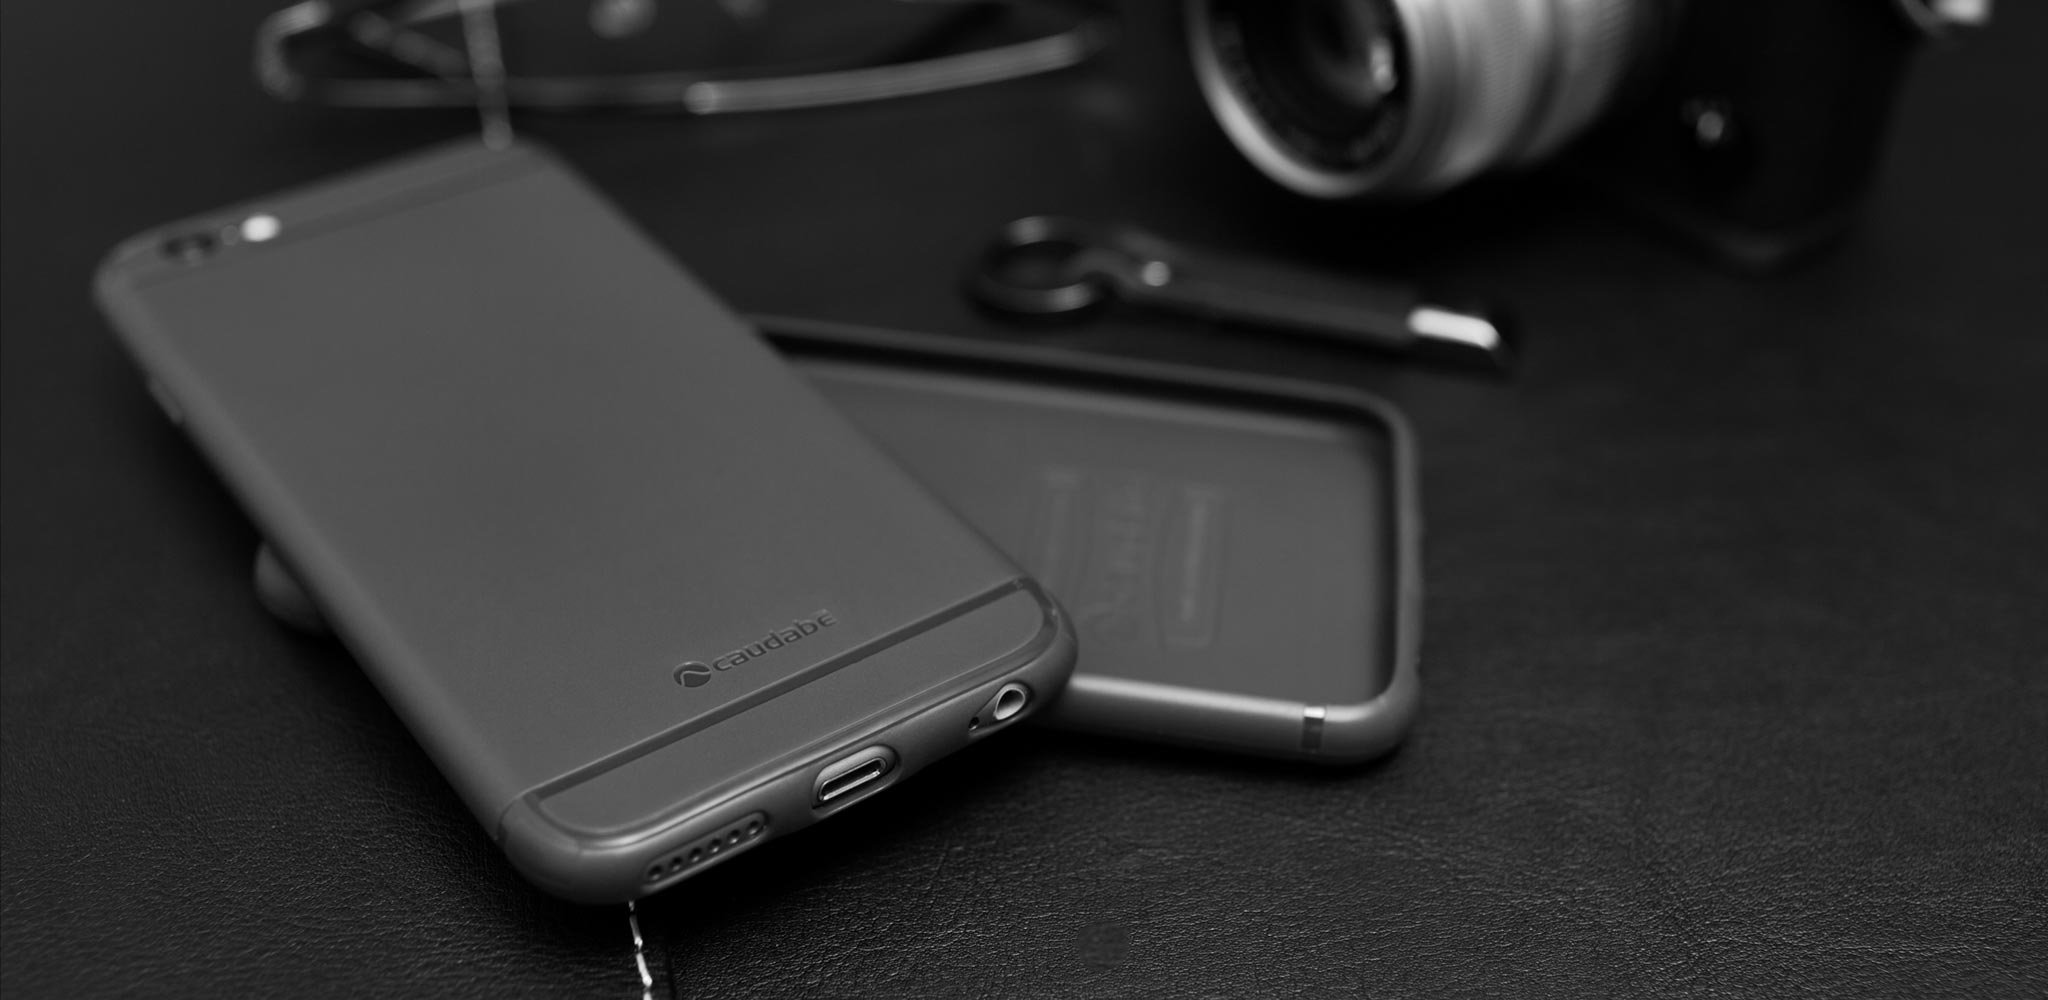 The Sheath | Super slim, shock-absorbing, minimalist iPhone case | camera